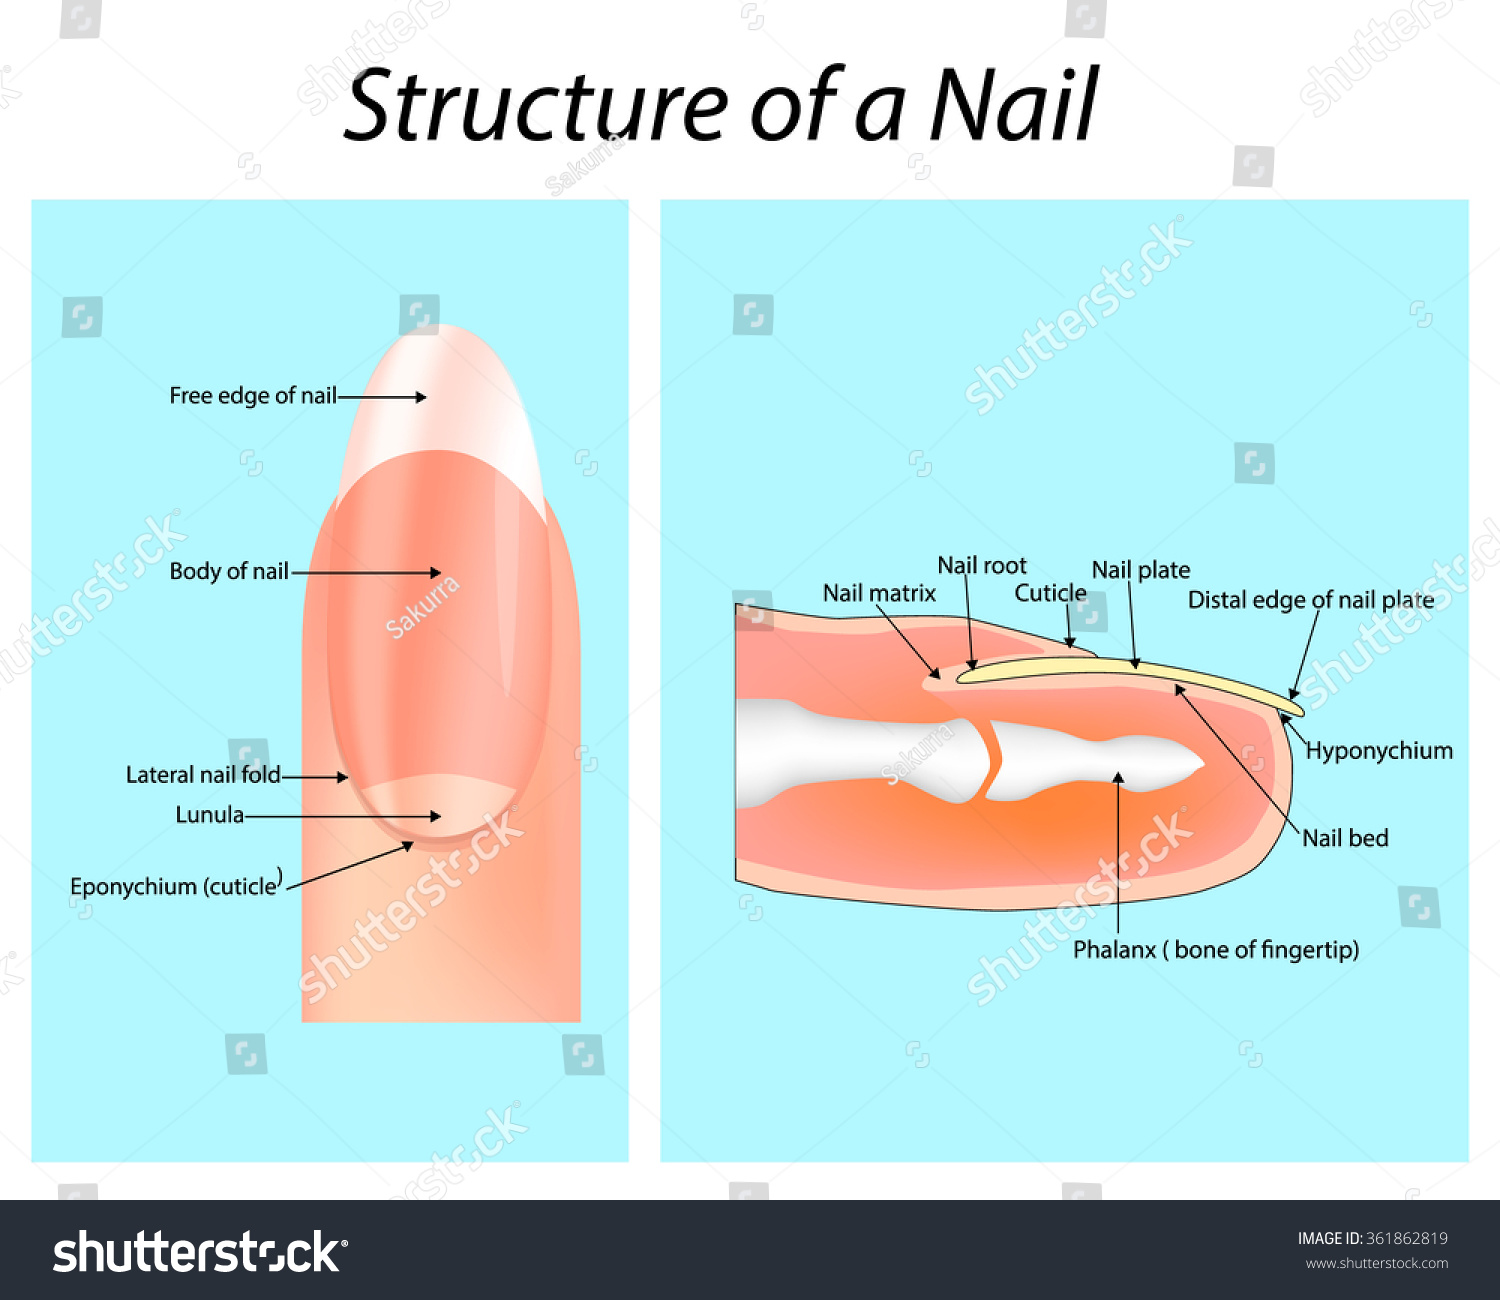 Structure Nail Nail Anatomy Stock Vector 361862819 - Shutterstock